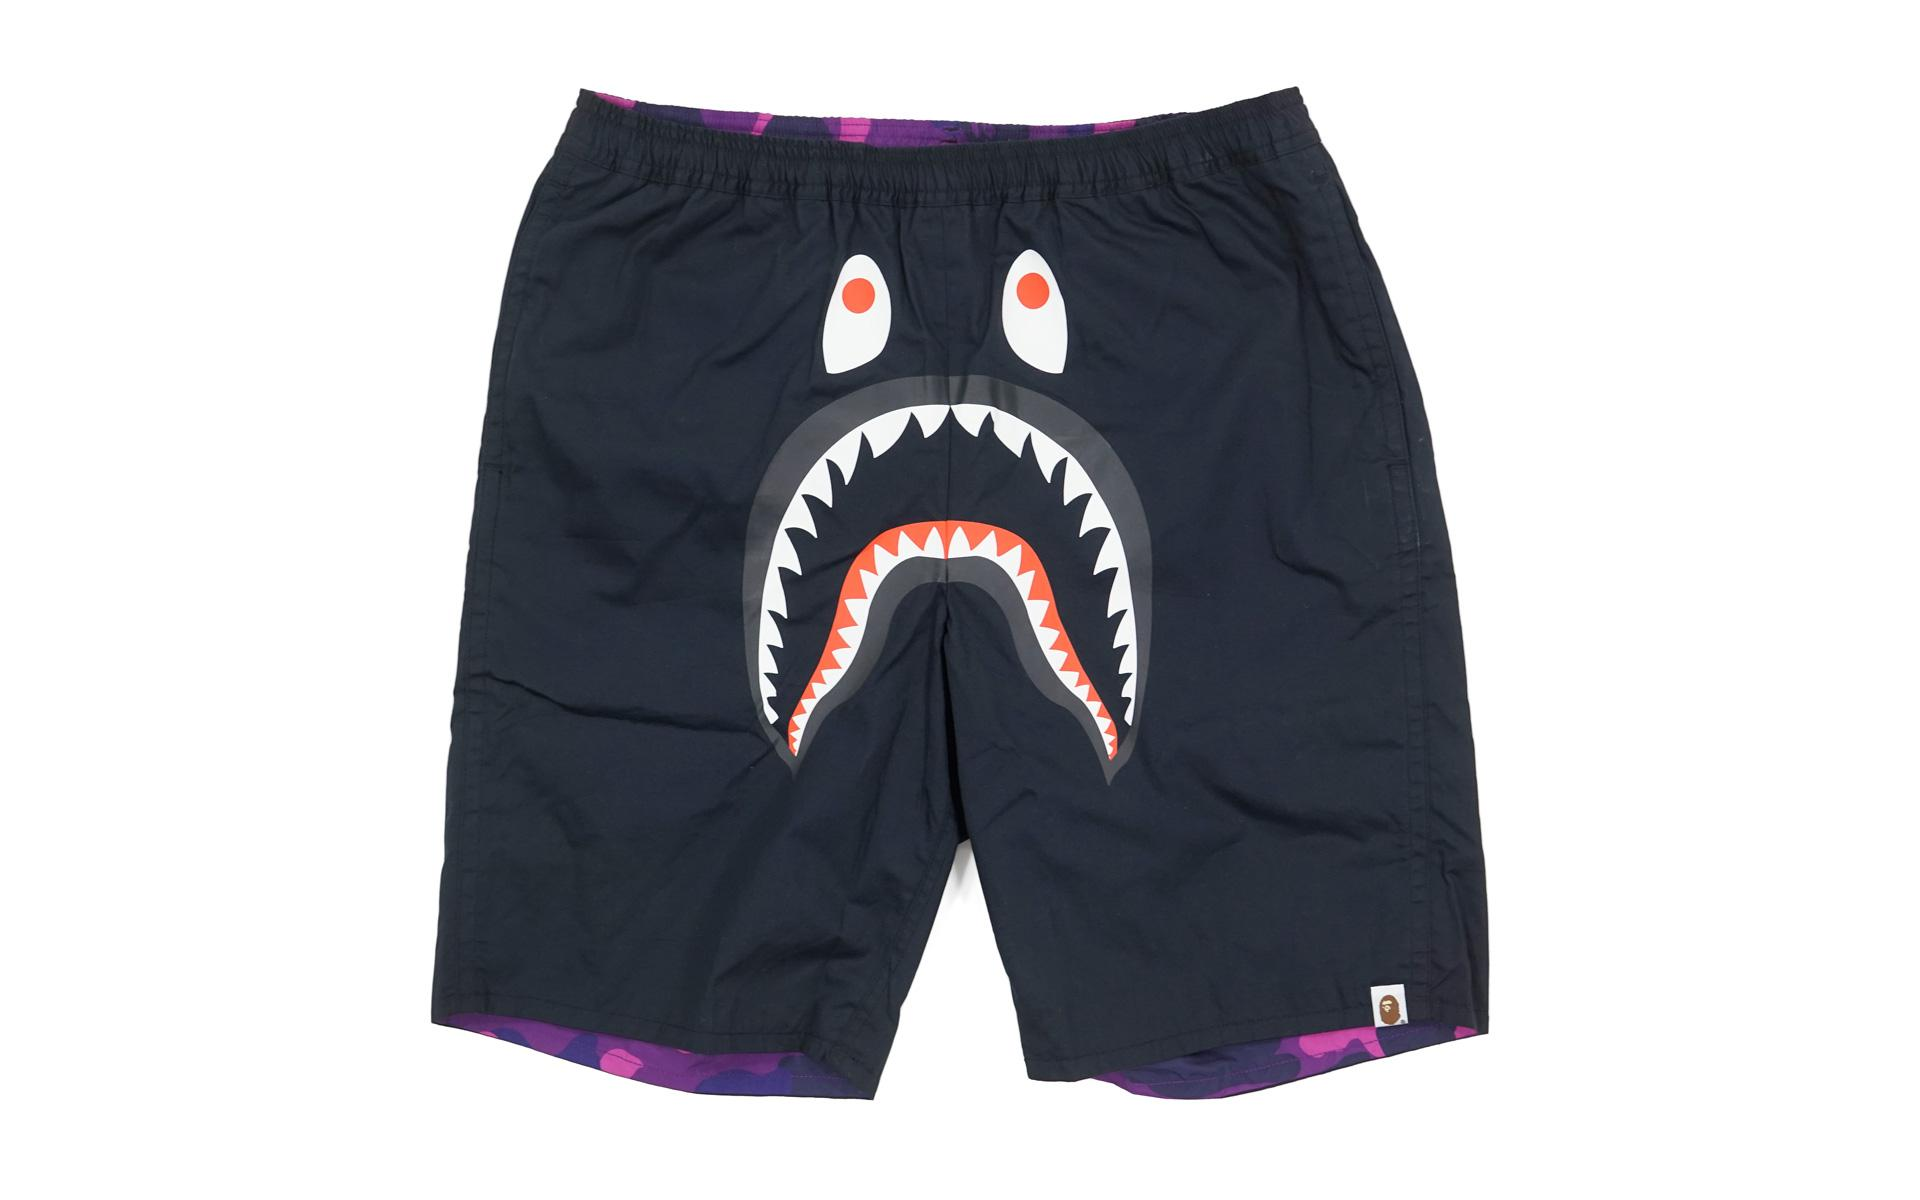 Lyst - A Bathing Ape Reversible Color Camo Shark Shorts Black purple ... 05aa5a001b